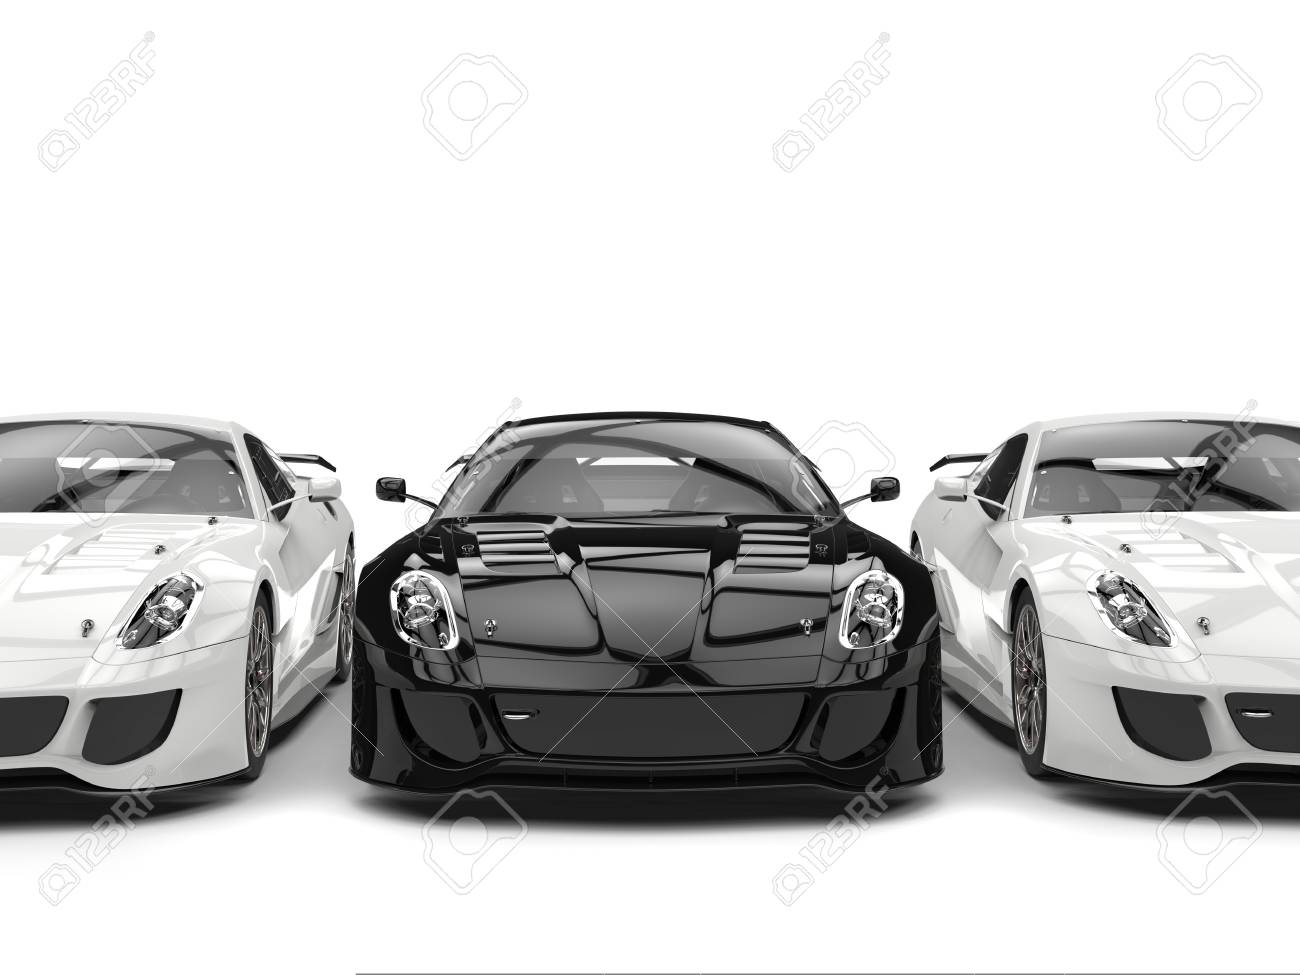 Sublime Modern Black And White Sports Cars Side By Side Stock Photo Picture And Royalty Free Image Image 75343548